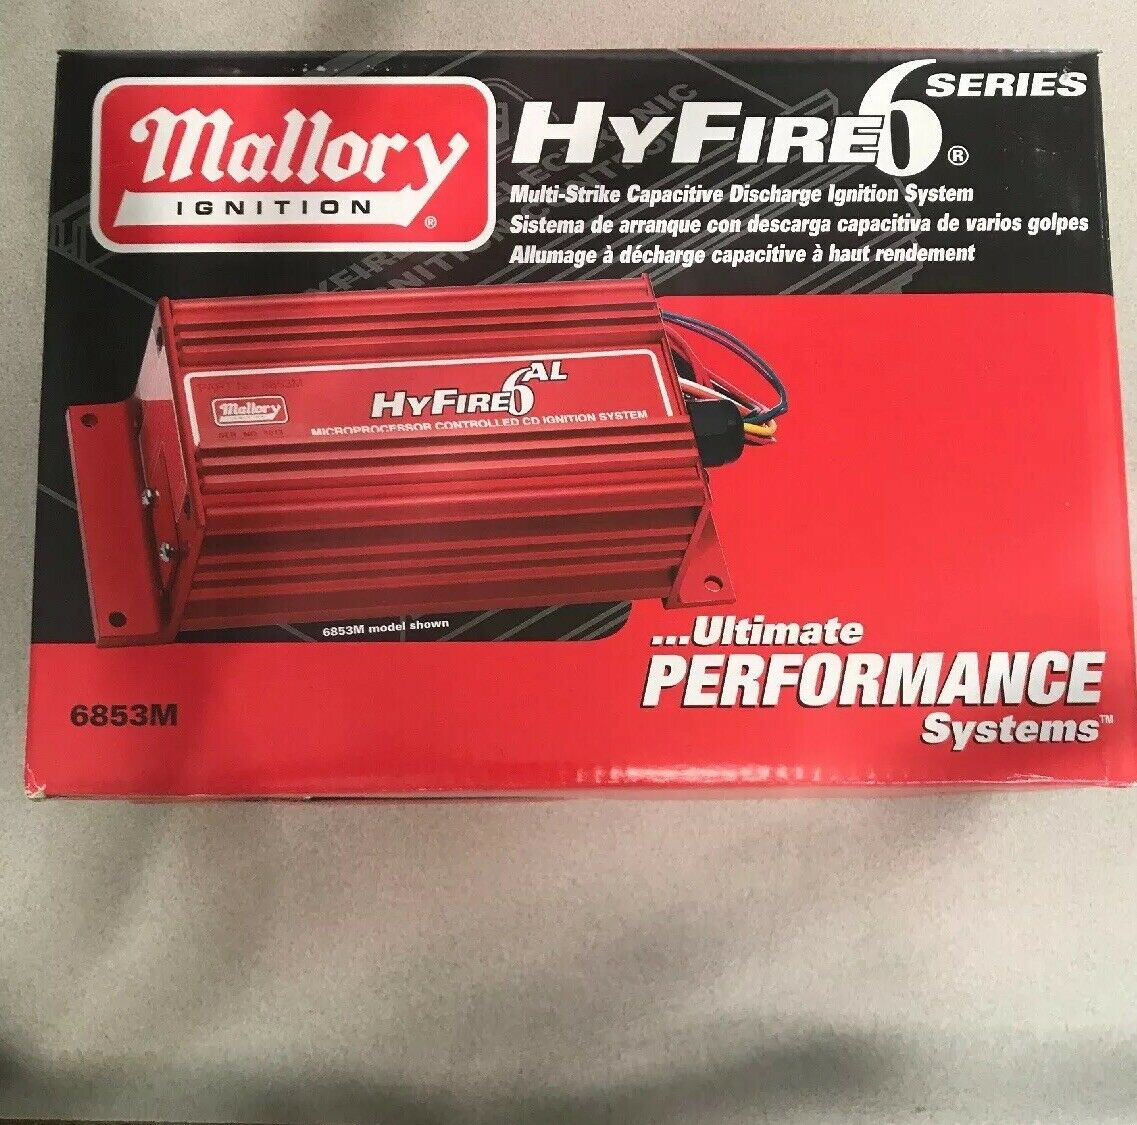 Mallory 6852M HyFire Capacitive Discharge Ignition System